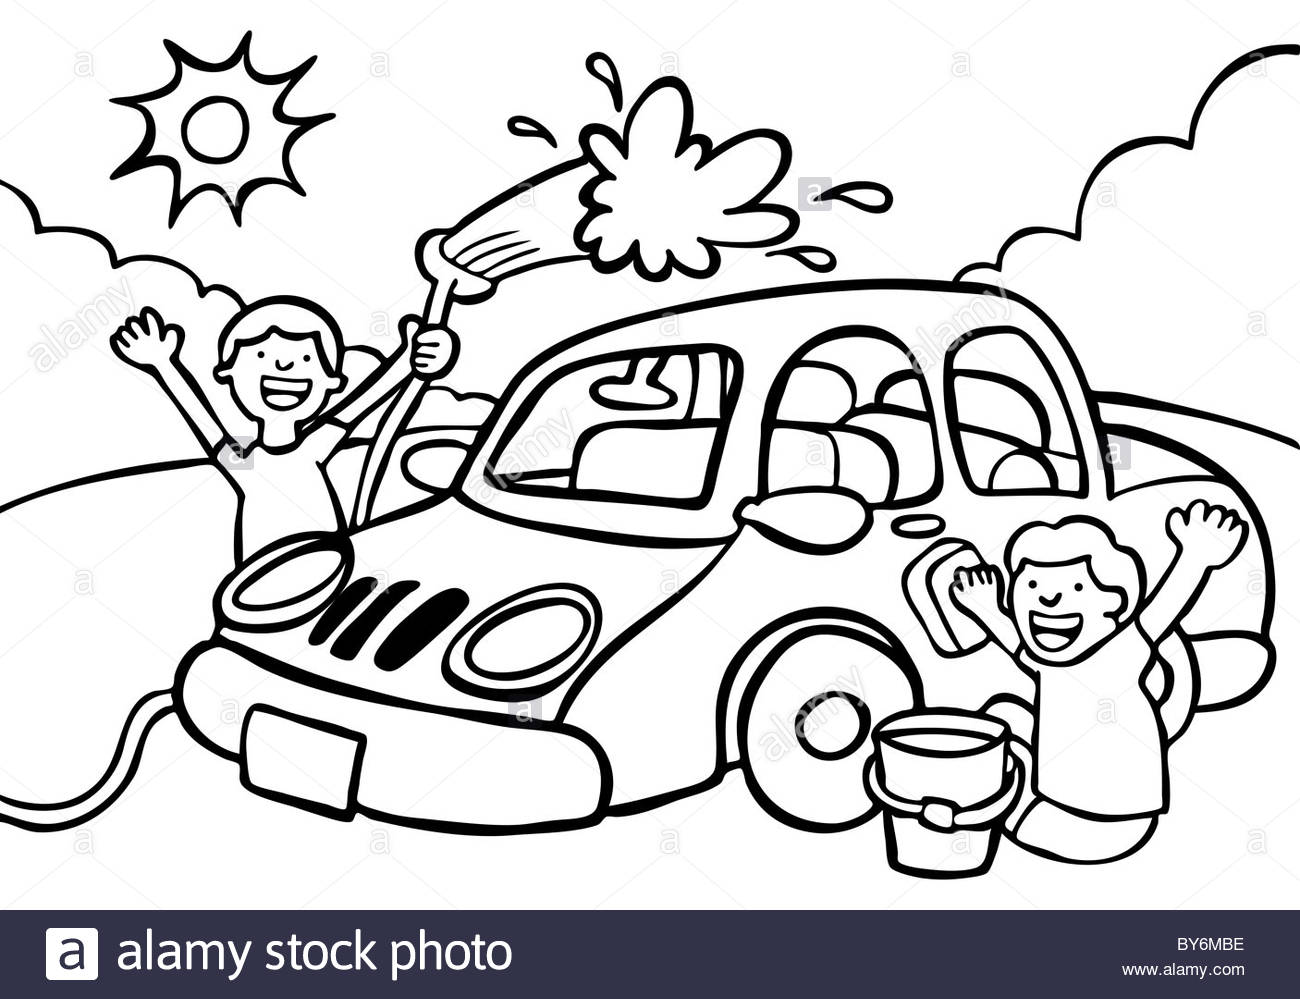 hight resolution of 1300x999 cartoon image of two kids washing a car